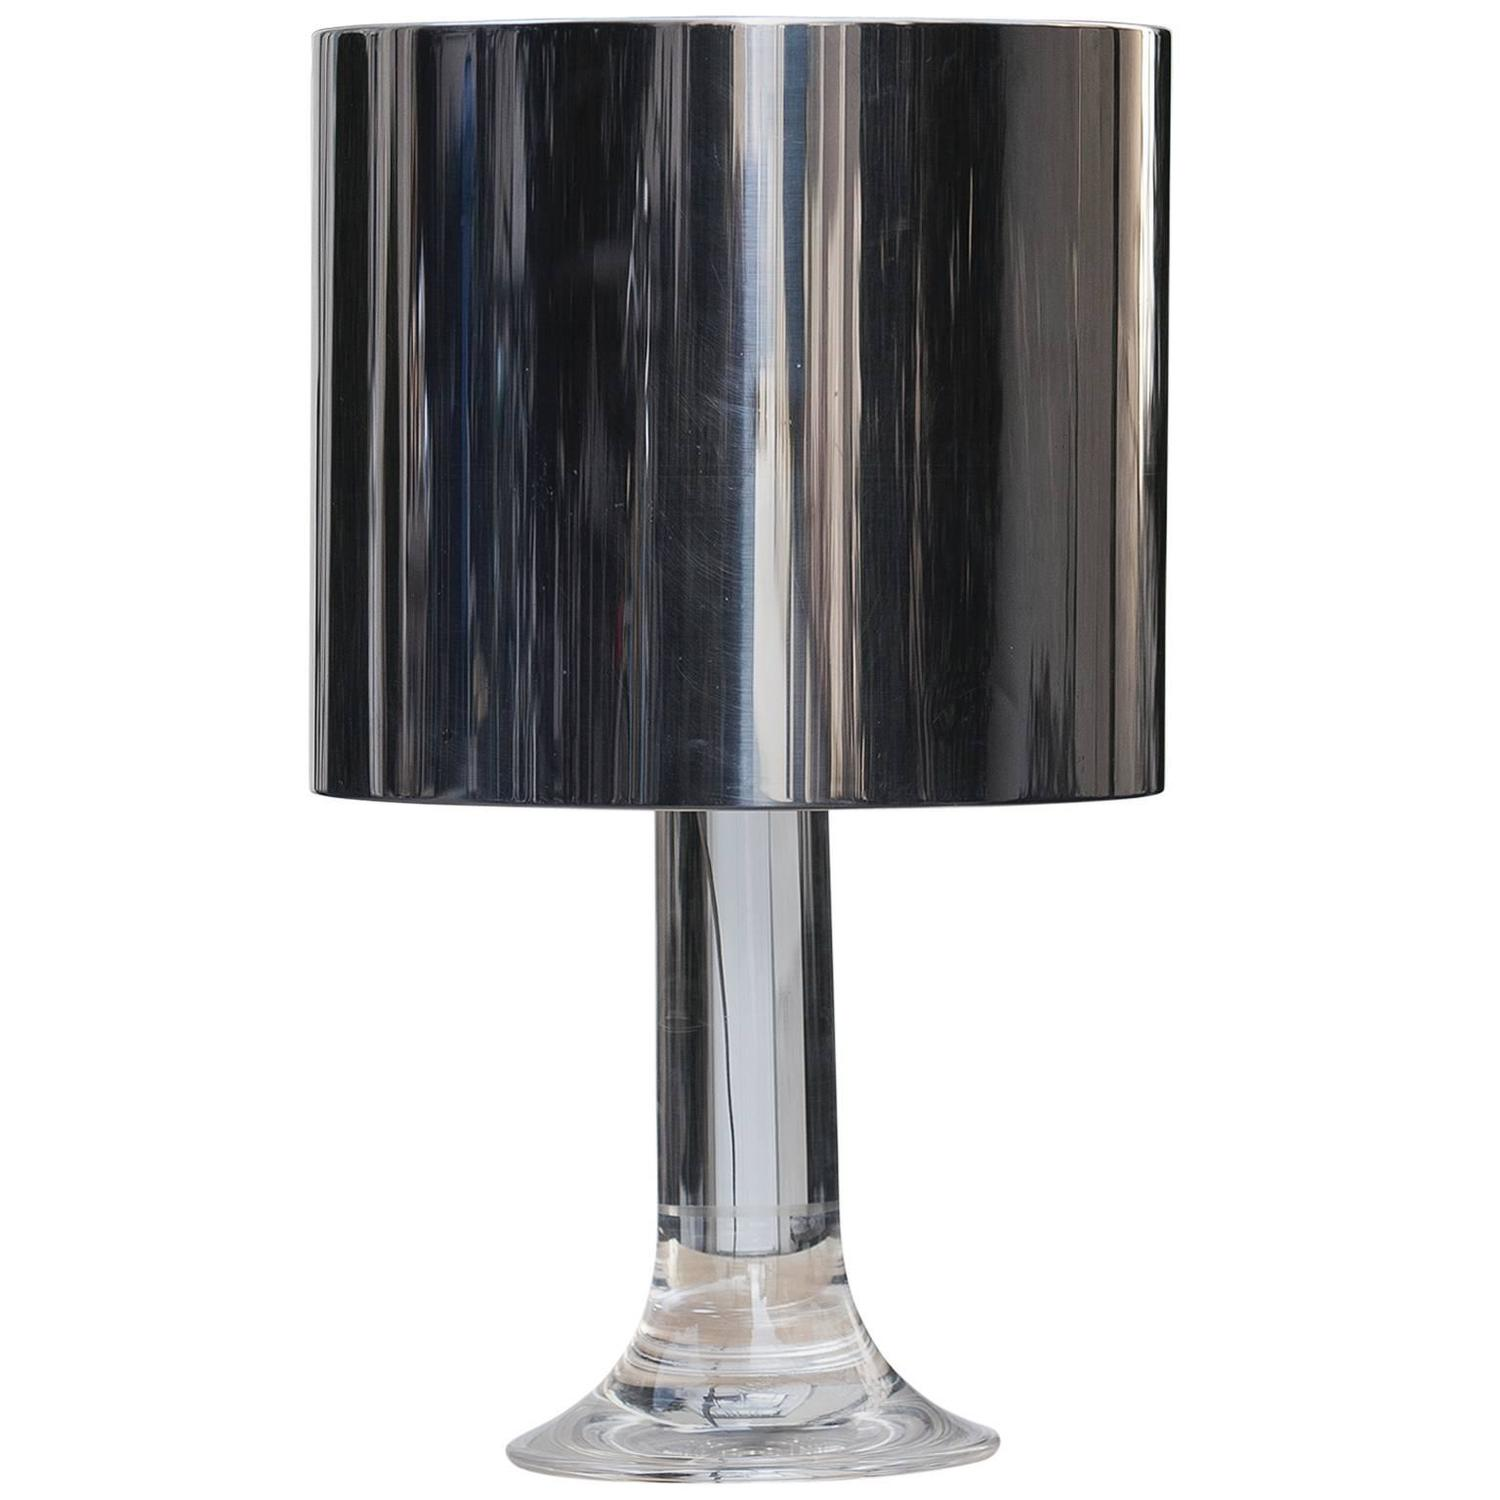 harvey guzzini lucite table lamp with metal shade at 1stdibs. Black Bedroom Furniture Sets. Home Design Ideas